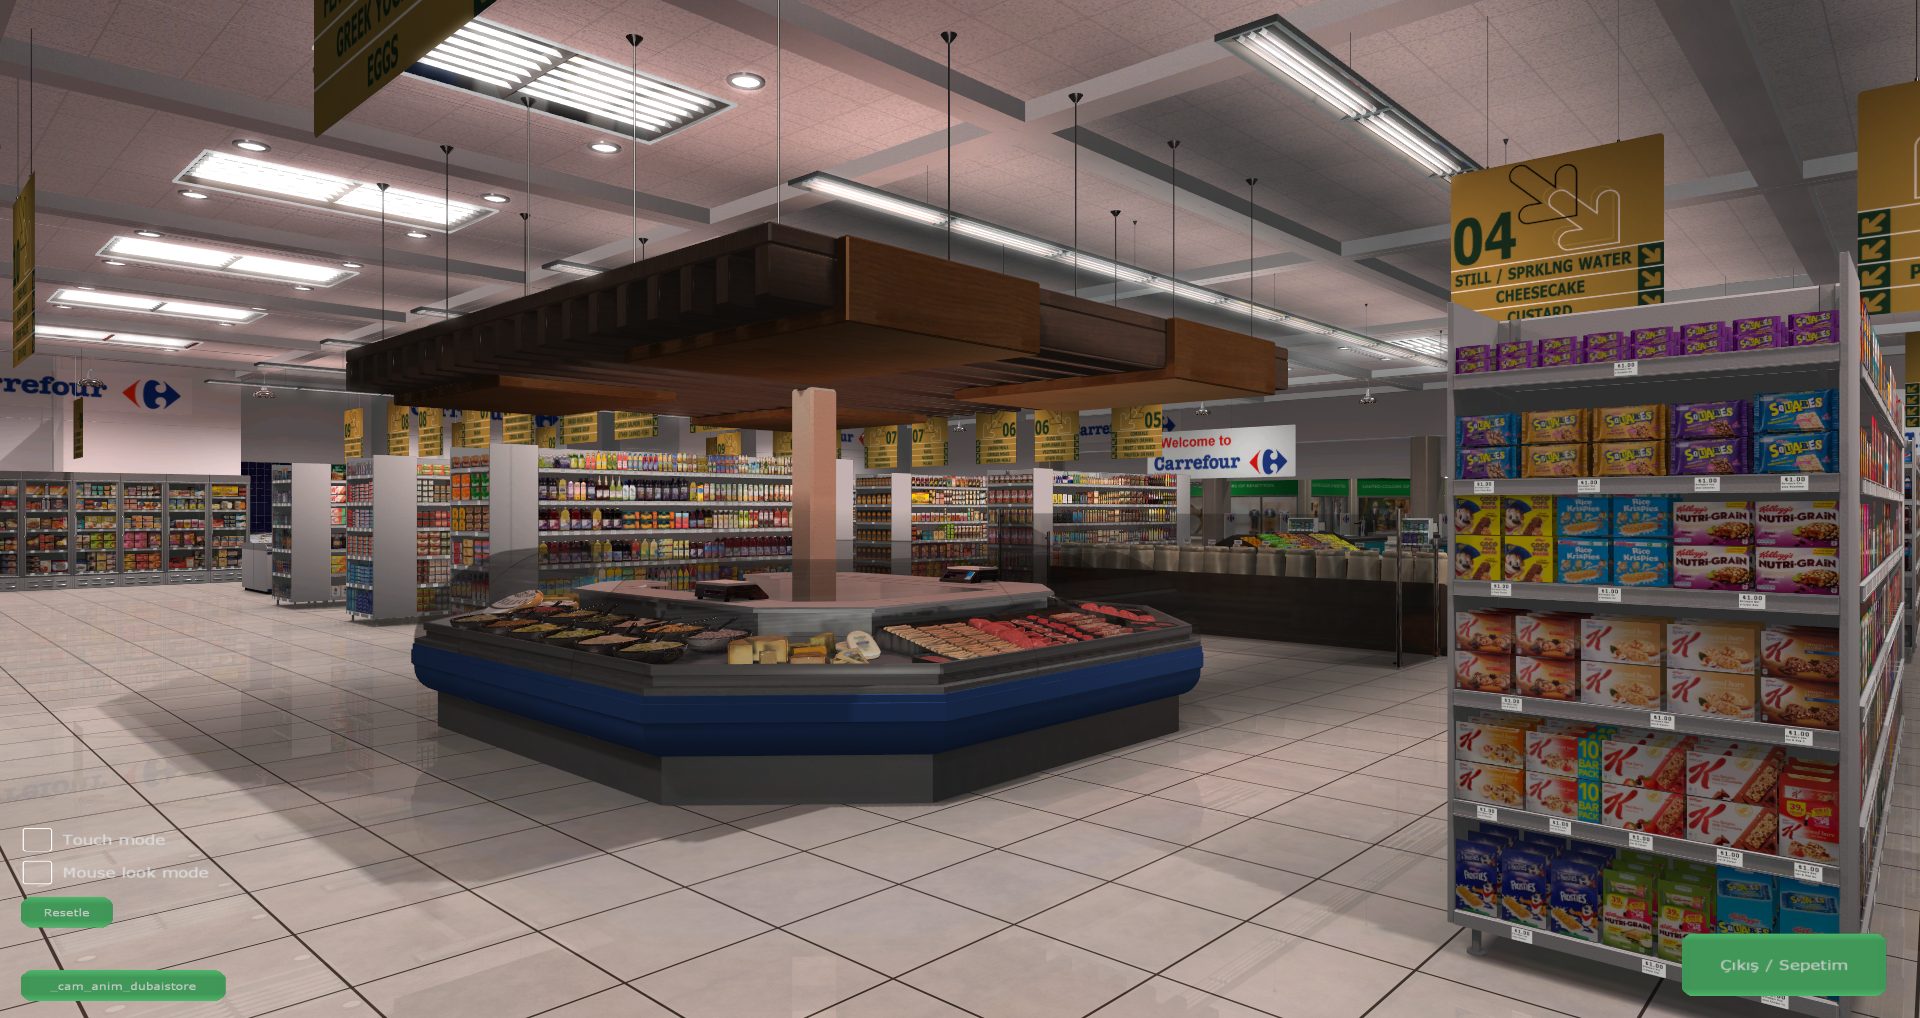 3D Shopping Virtual Store Screenshot from Carrefour VR Supermarket 5